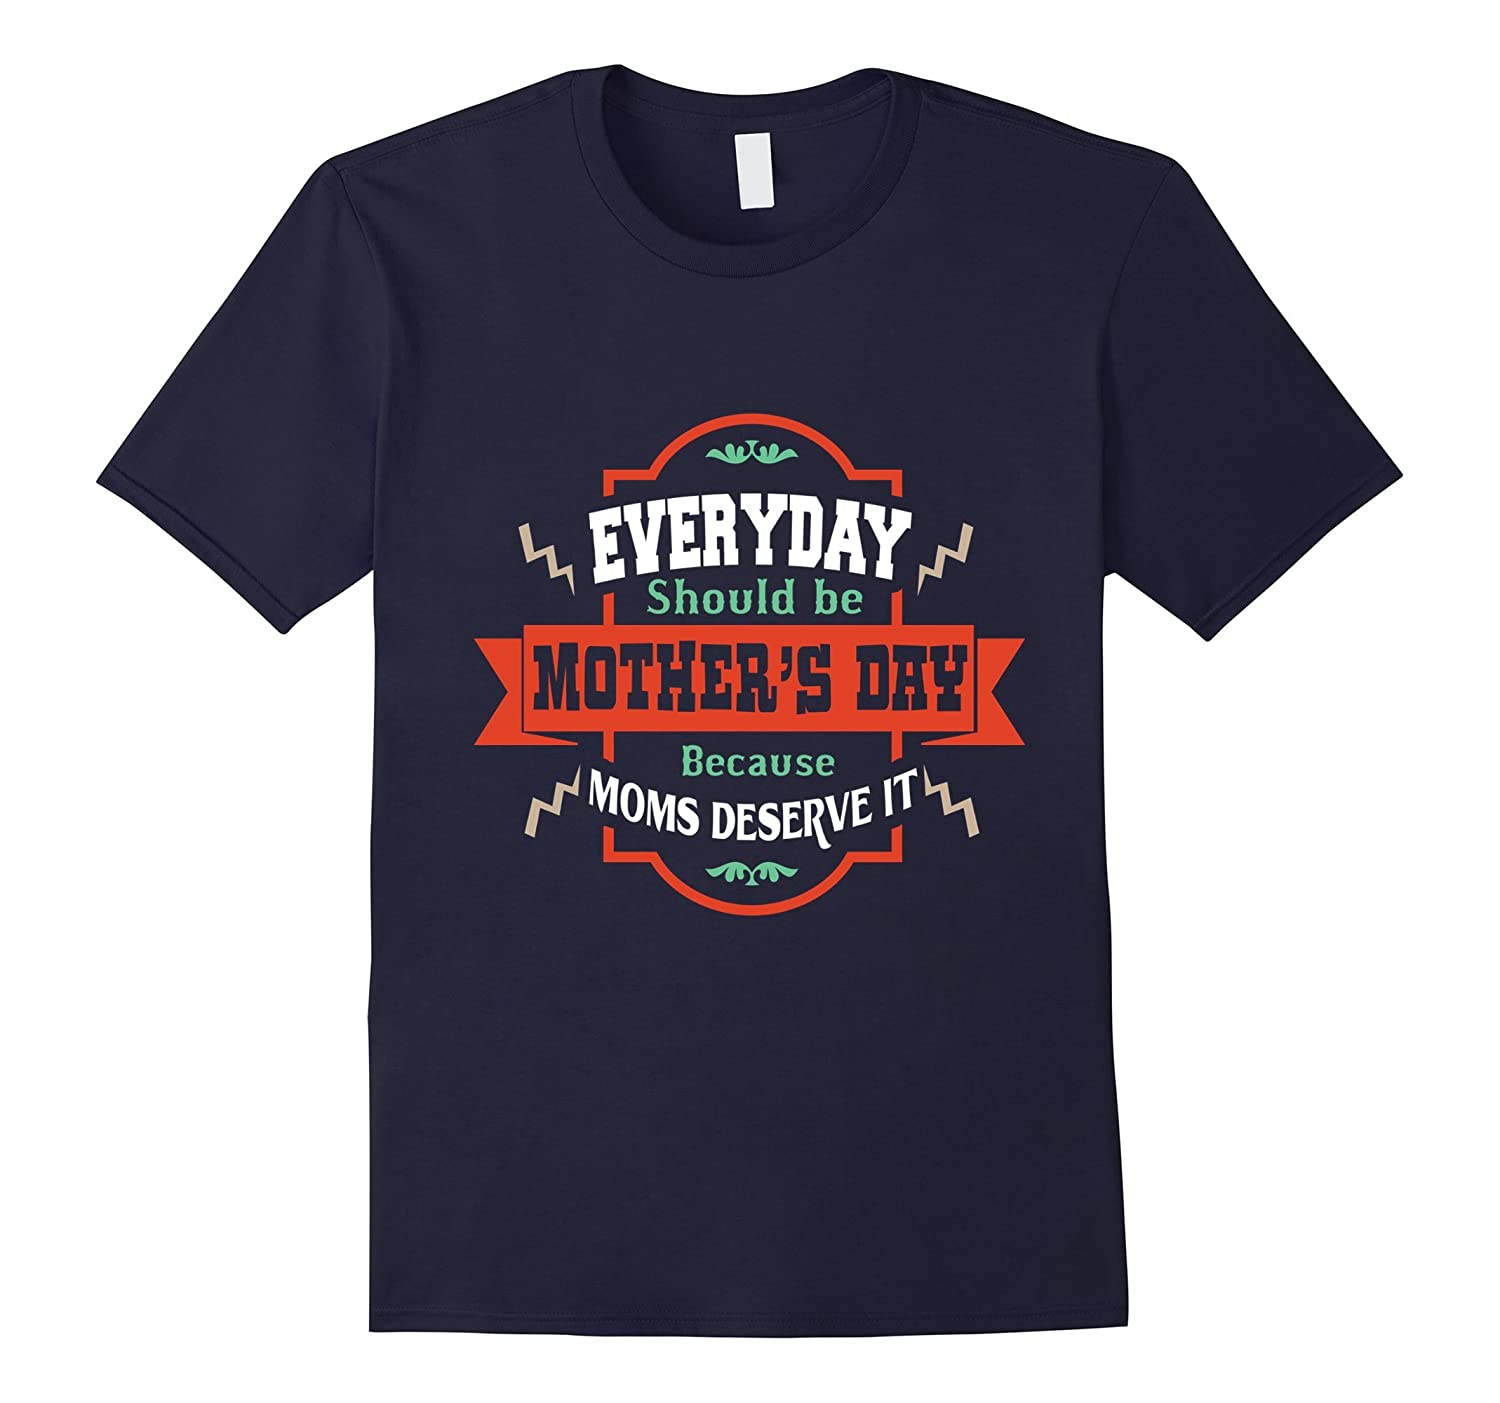 Everyday is Mothers Day - Funny Family T shirts for MomMama-TH